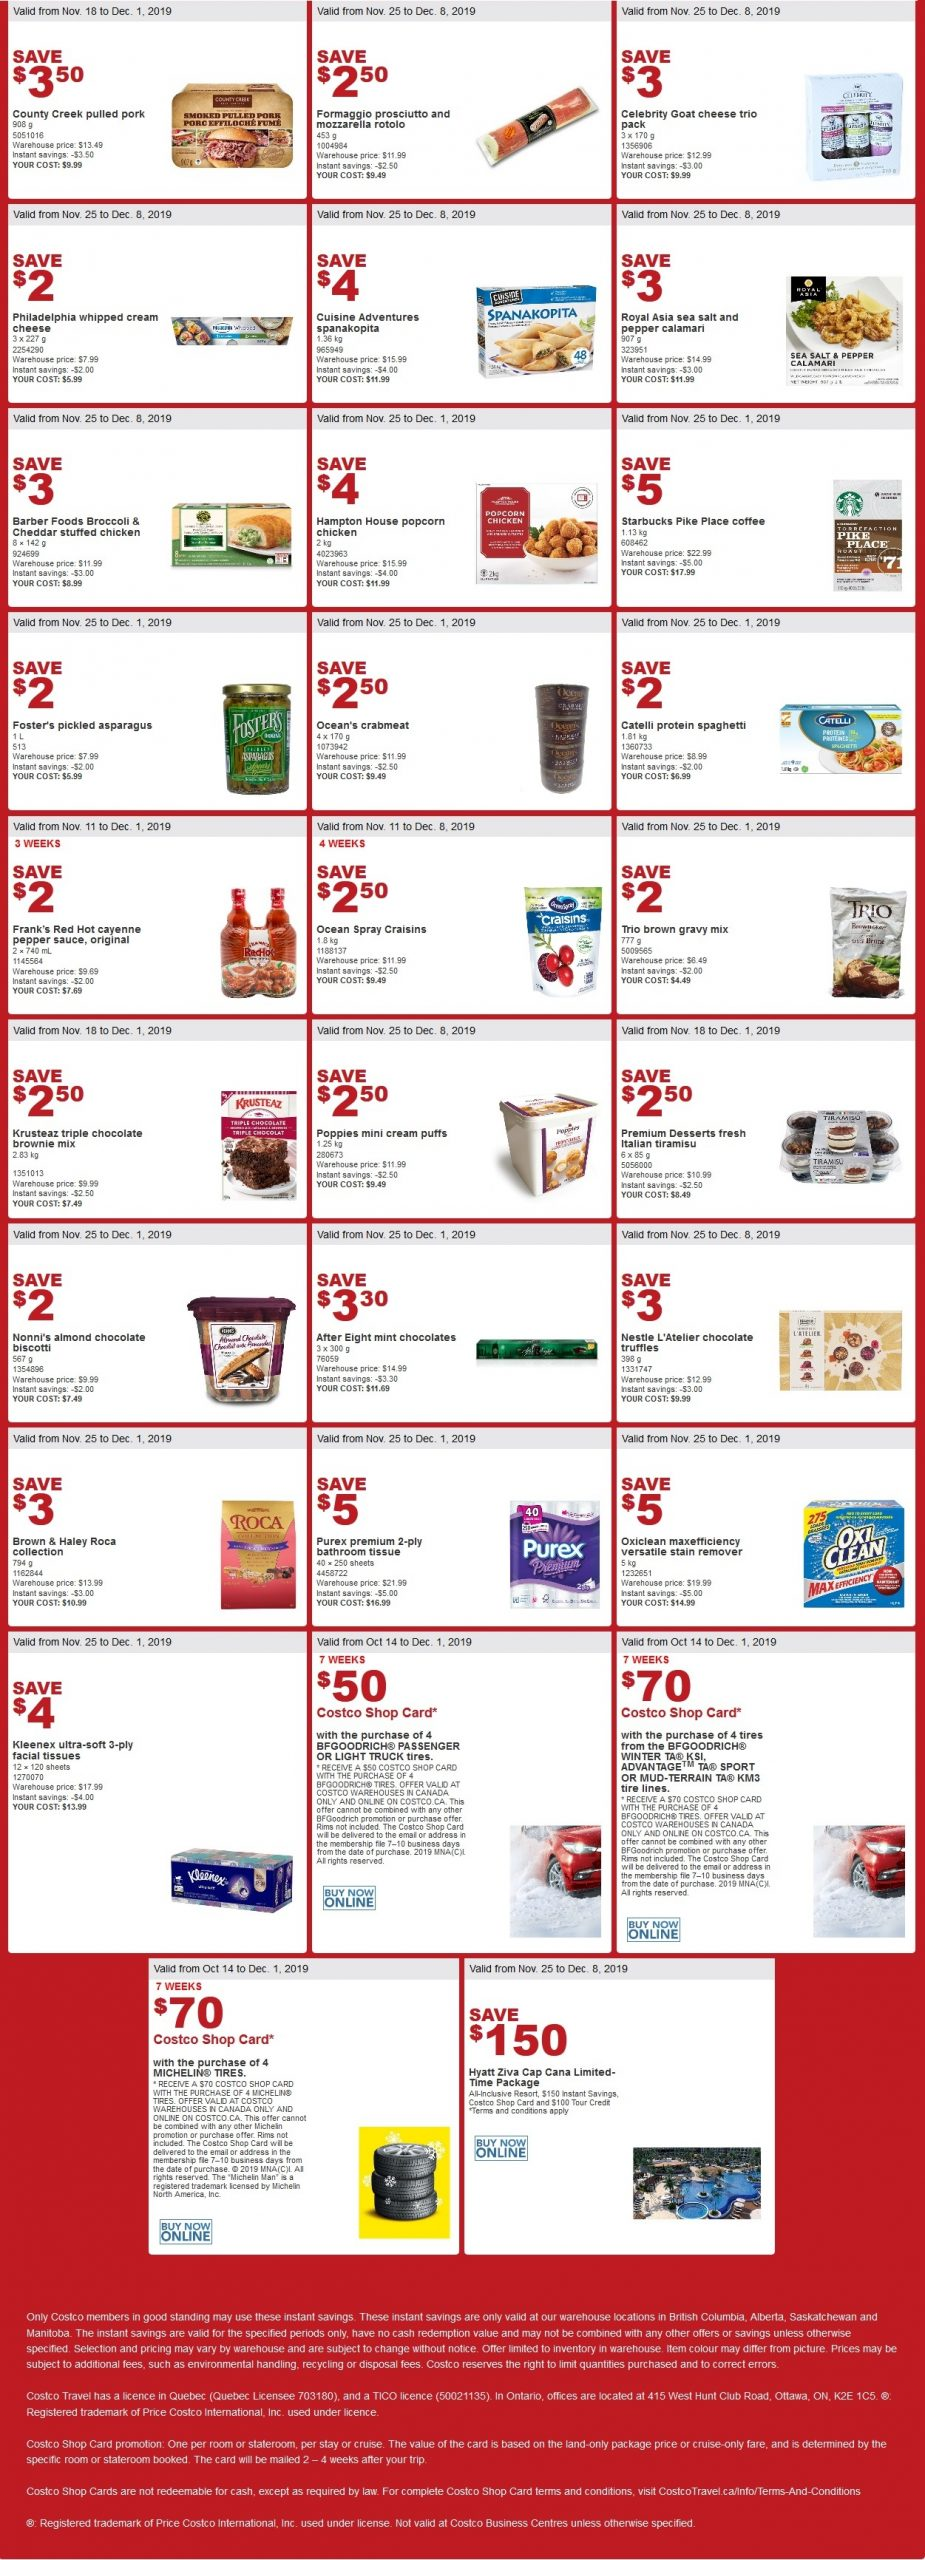 Costco Flyer for Oct Nov 25- Dec 1, 2019 for BC, AB, SK, MB